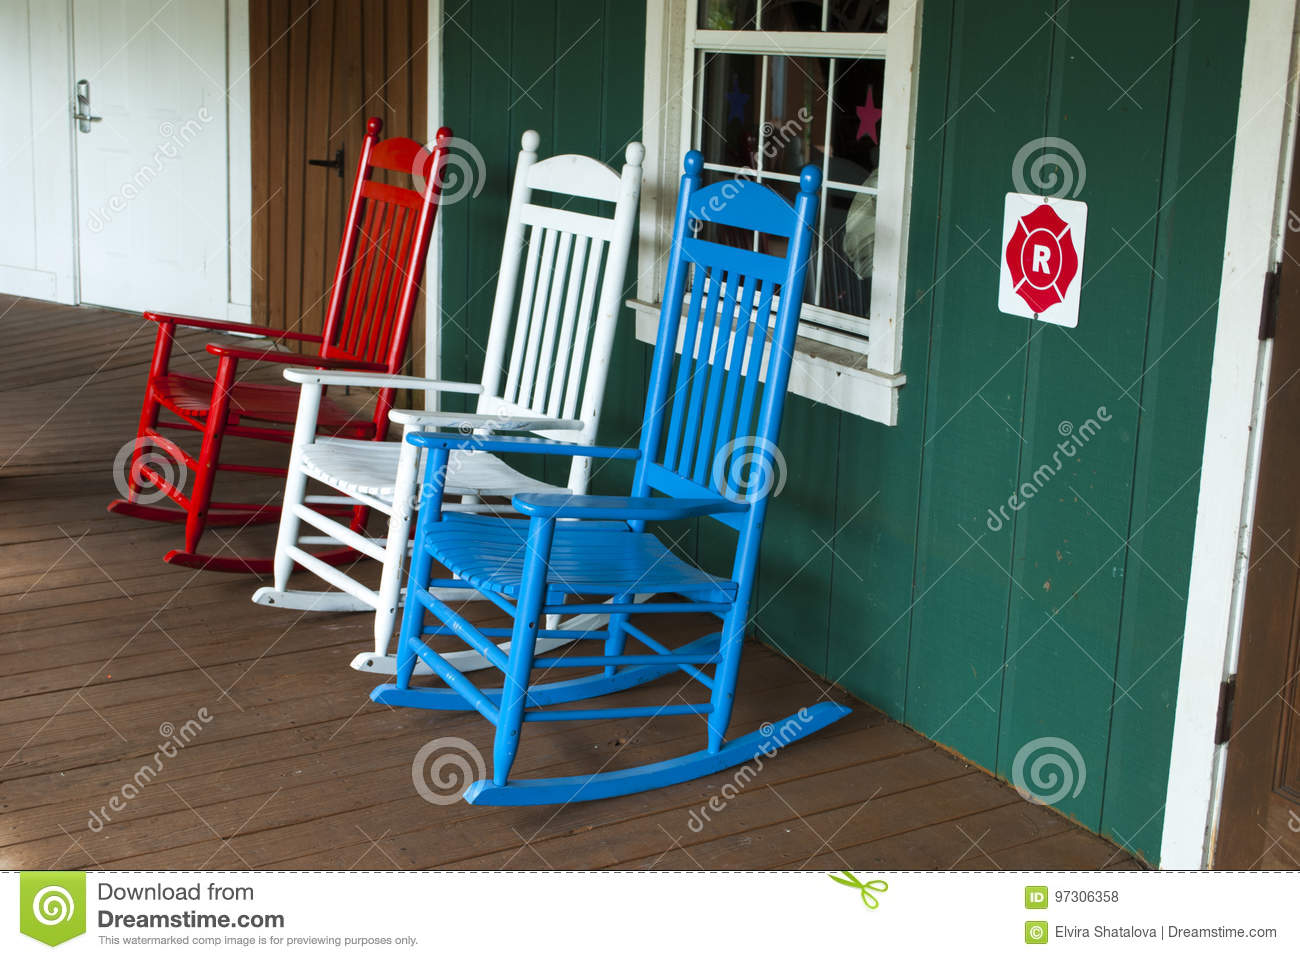 3 Outdoor Wooden Rocking Chairs In Red White And Blue Color Stock